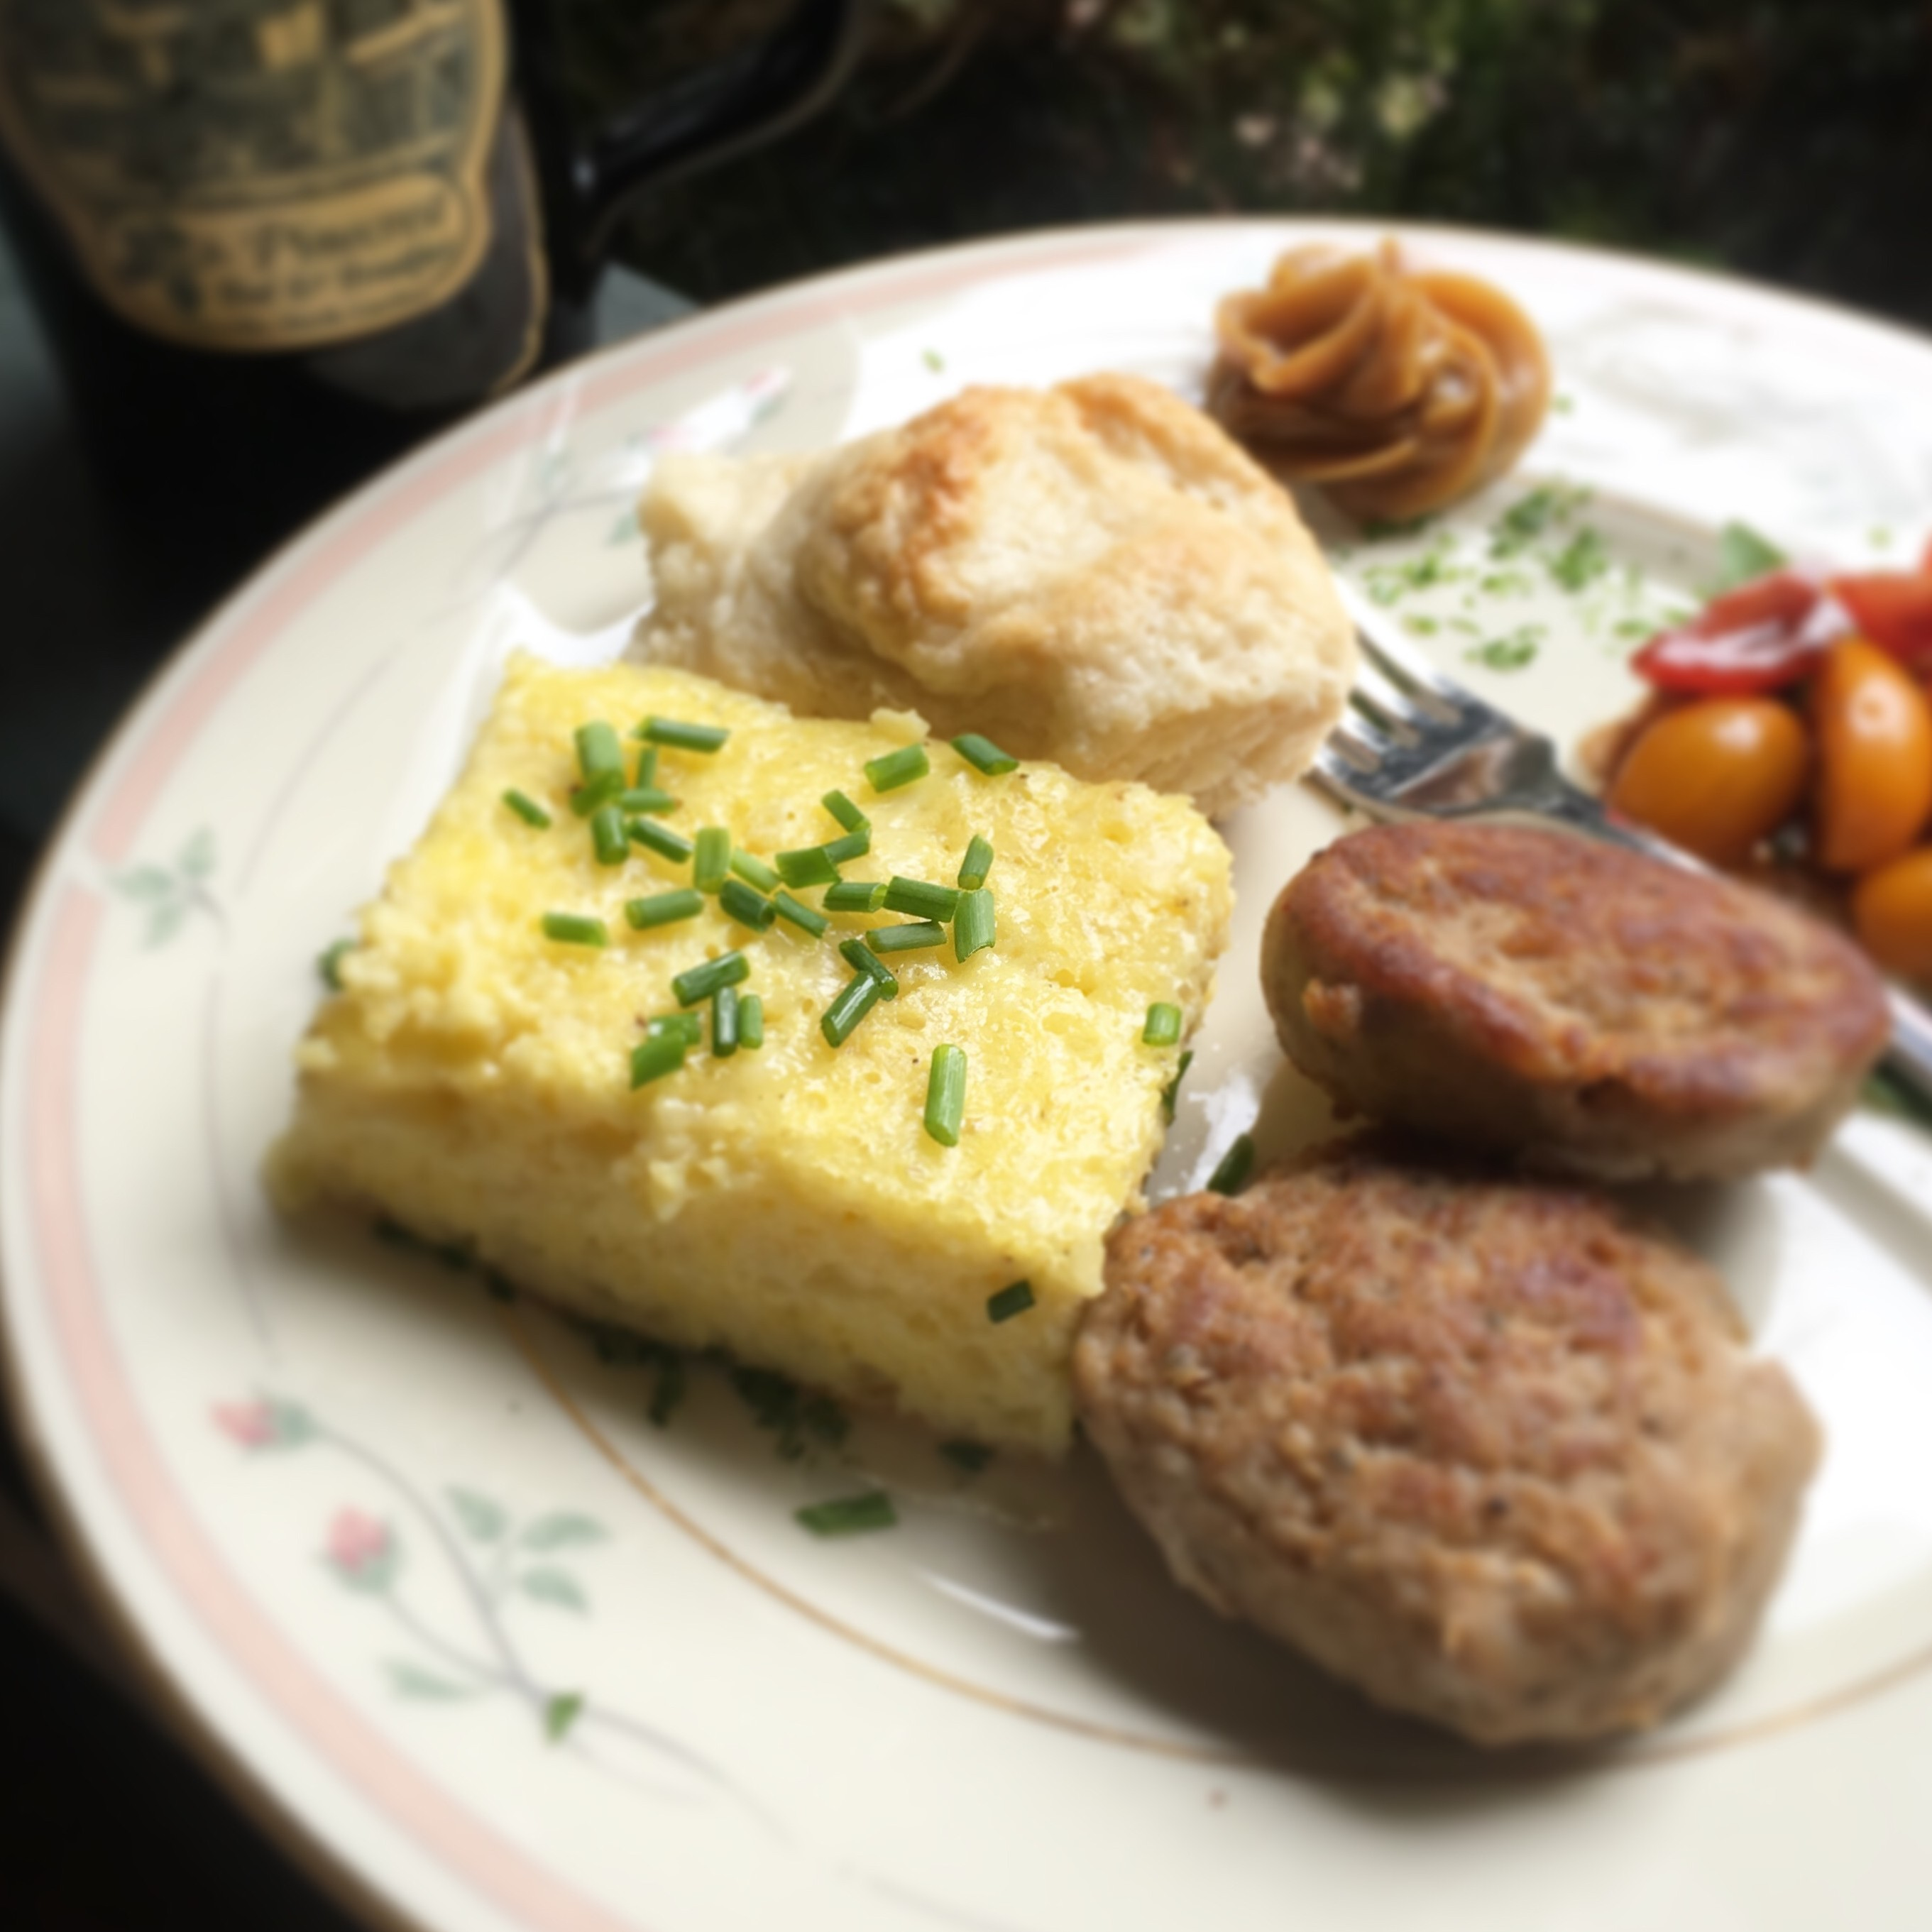 plate of eggs, sausage, potatoes at Pinecrest B&B